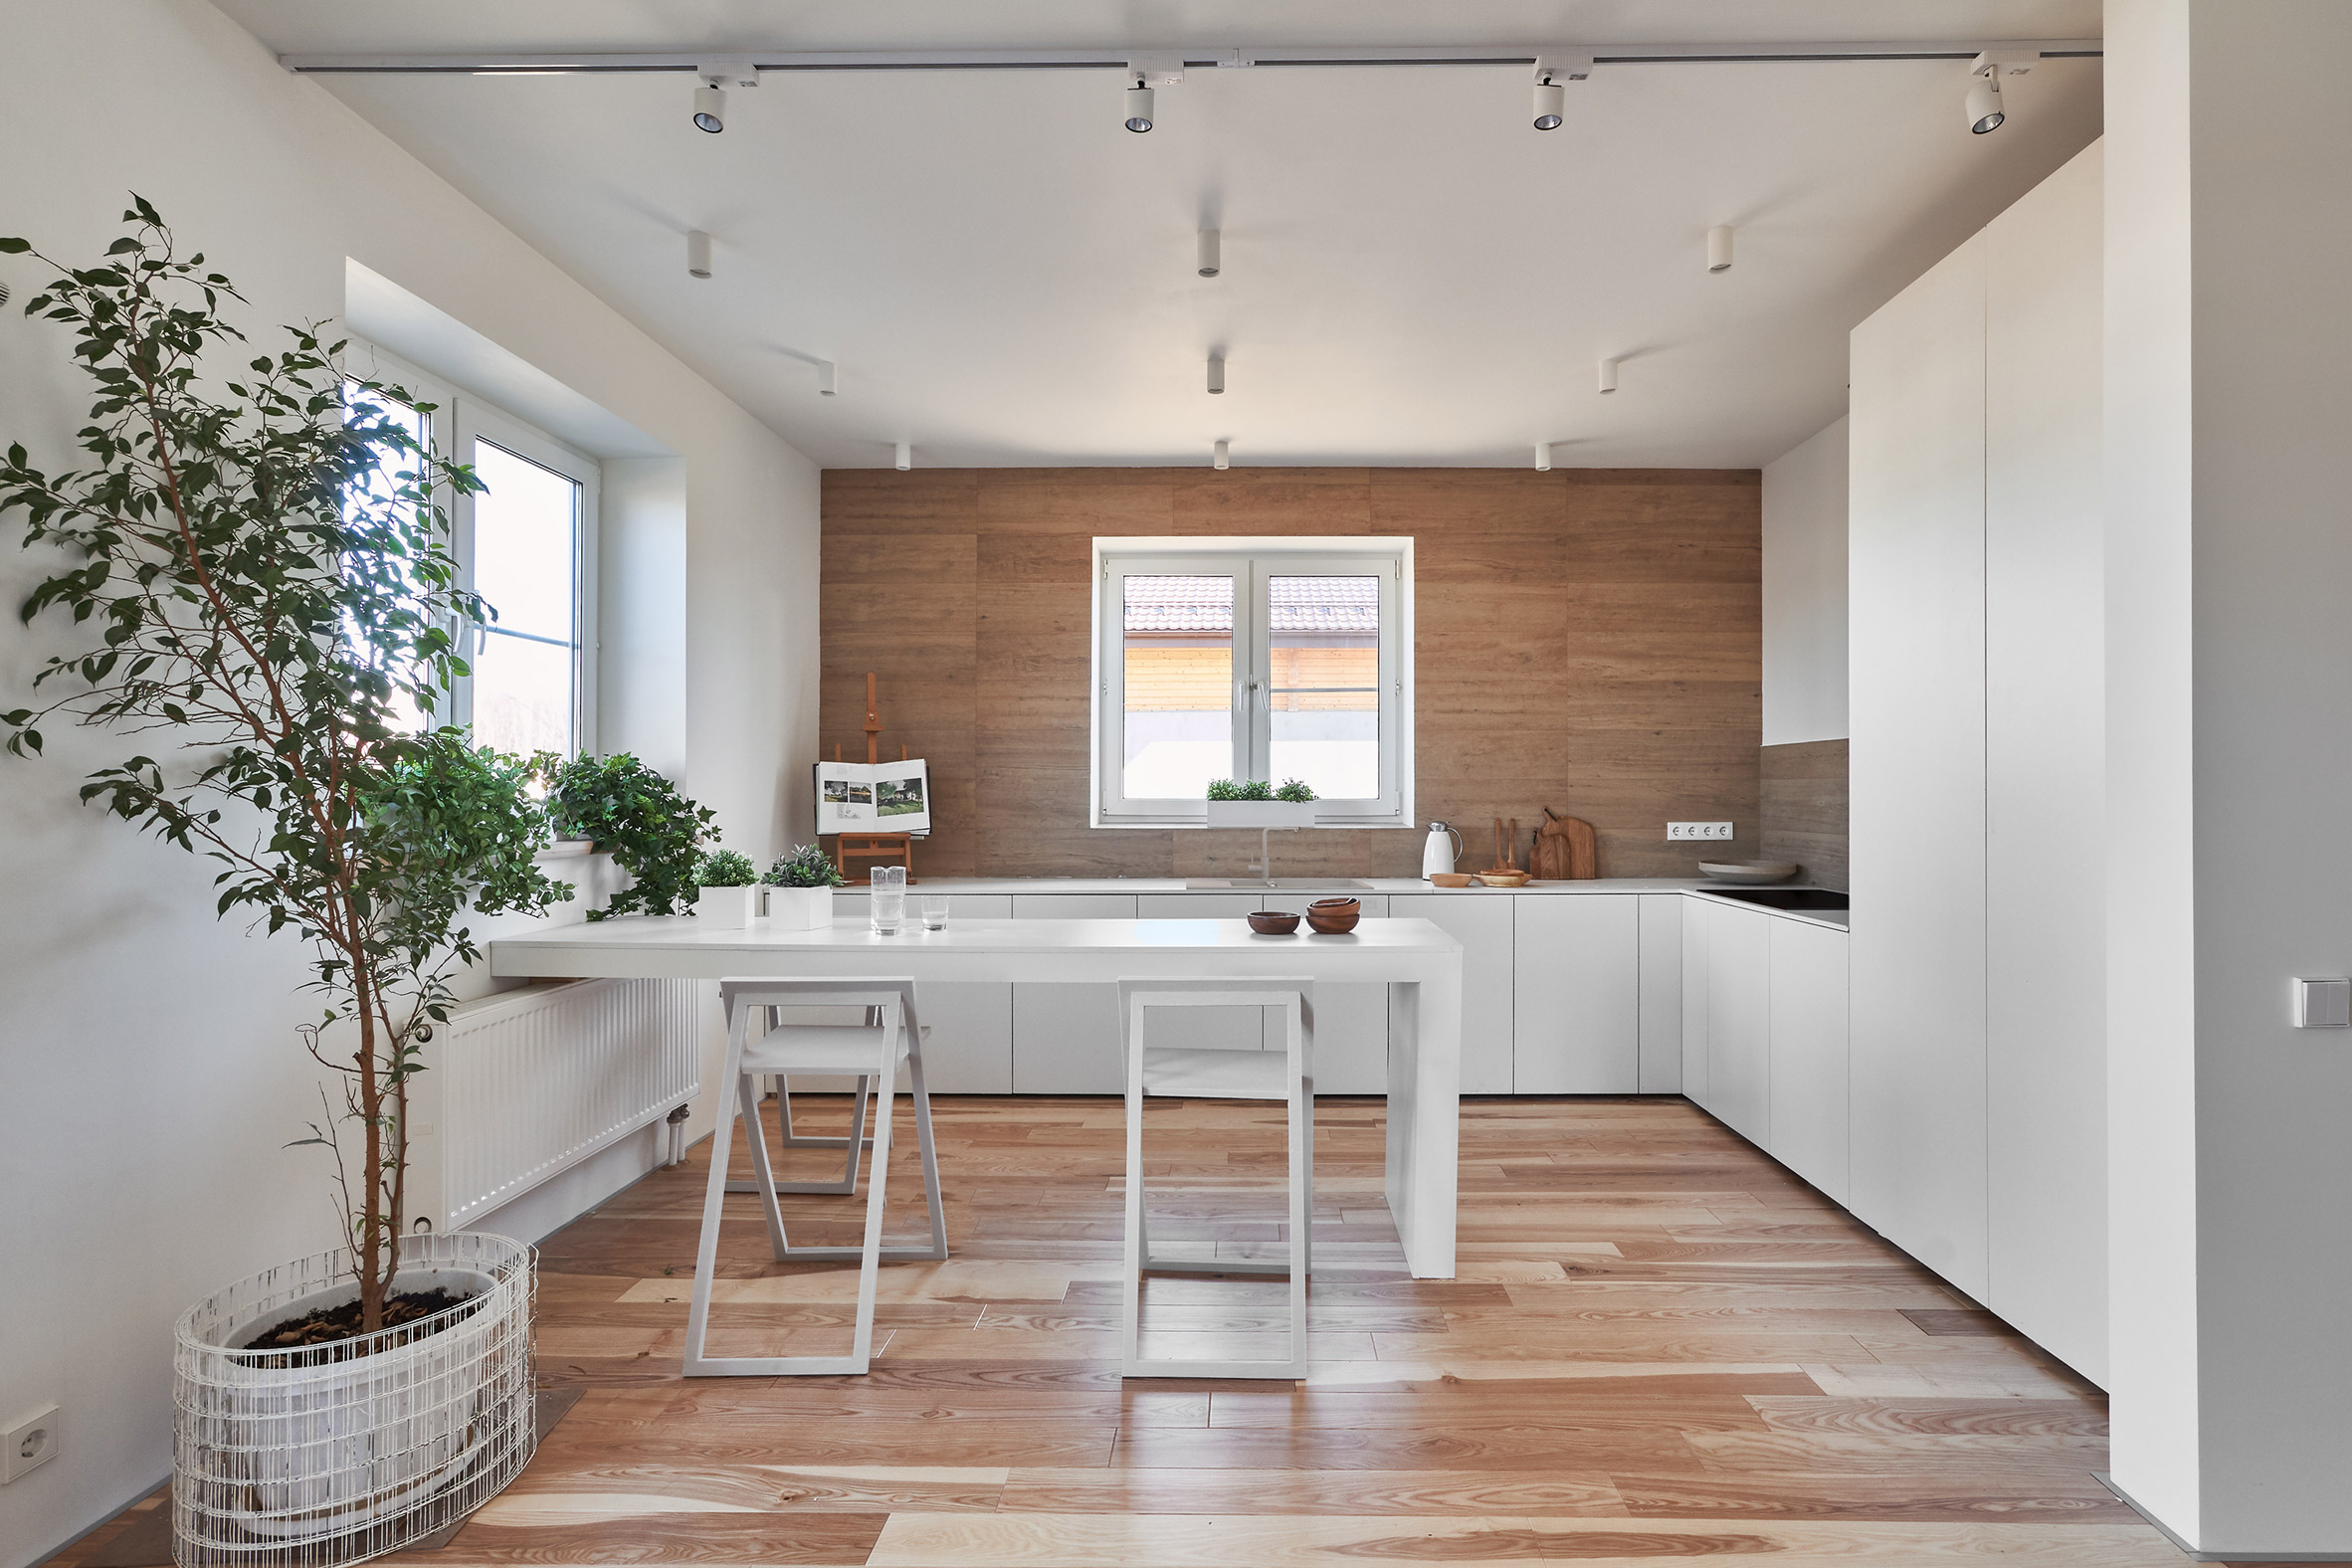 Family House by Ruetemple